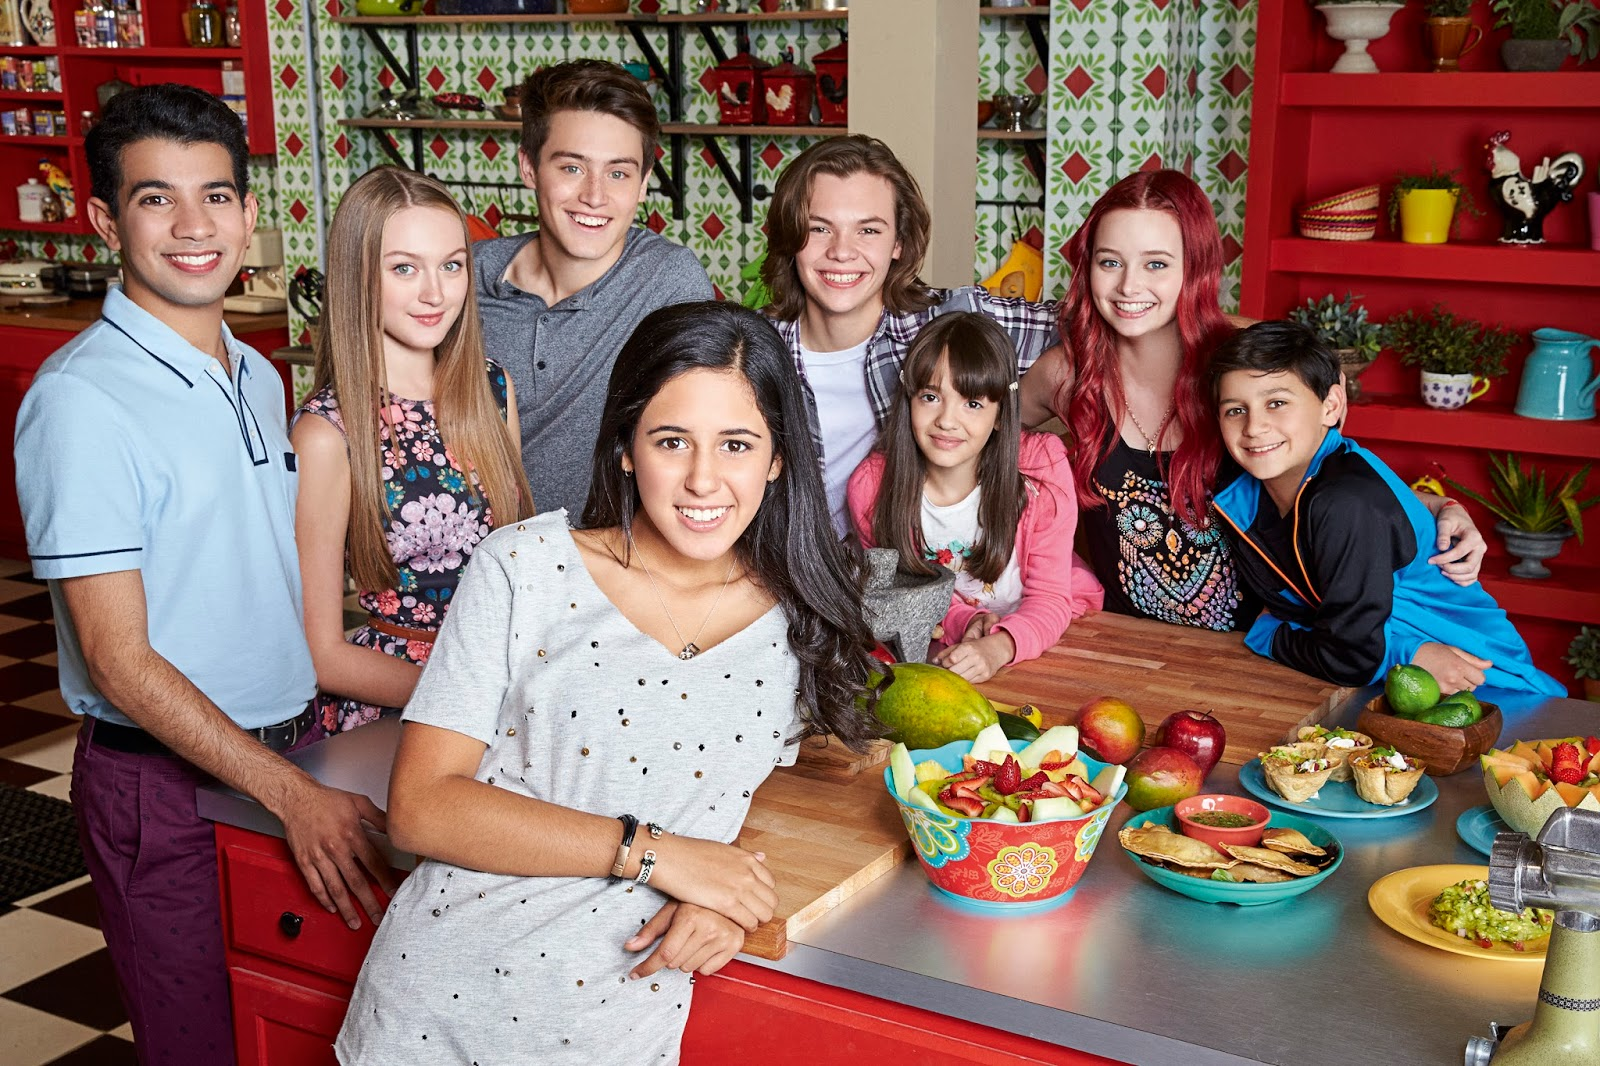 A group of 8 youth between the ages of 8 and 16, gathered around a commercial kitchen prep table laden with food; facing and smiling at the camera